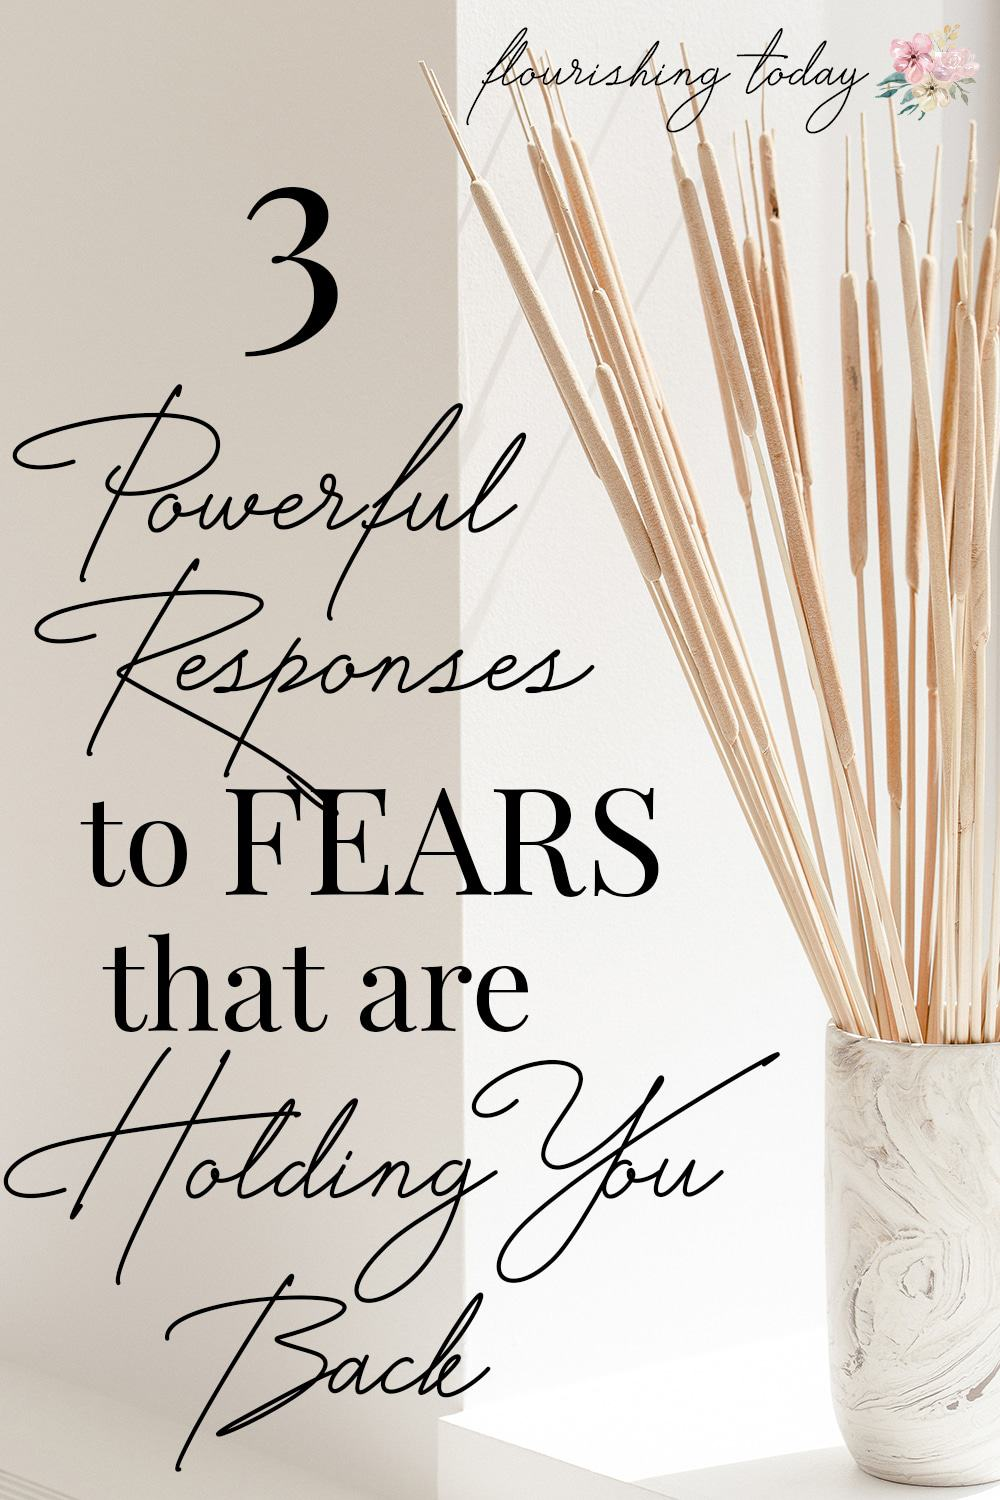 Are you having a hard time pushing past your fears? Here's a few tips on how to get over fears that are holding you back from God's best for your life! #overcomefear #getoverfear #fear